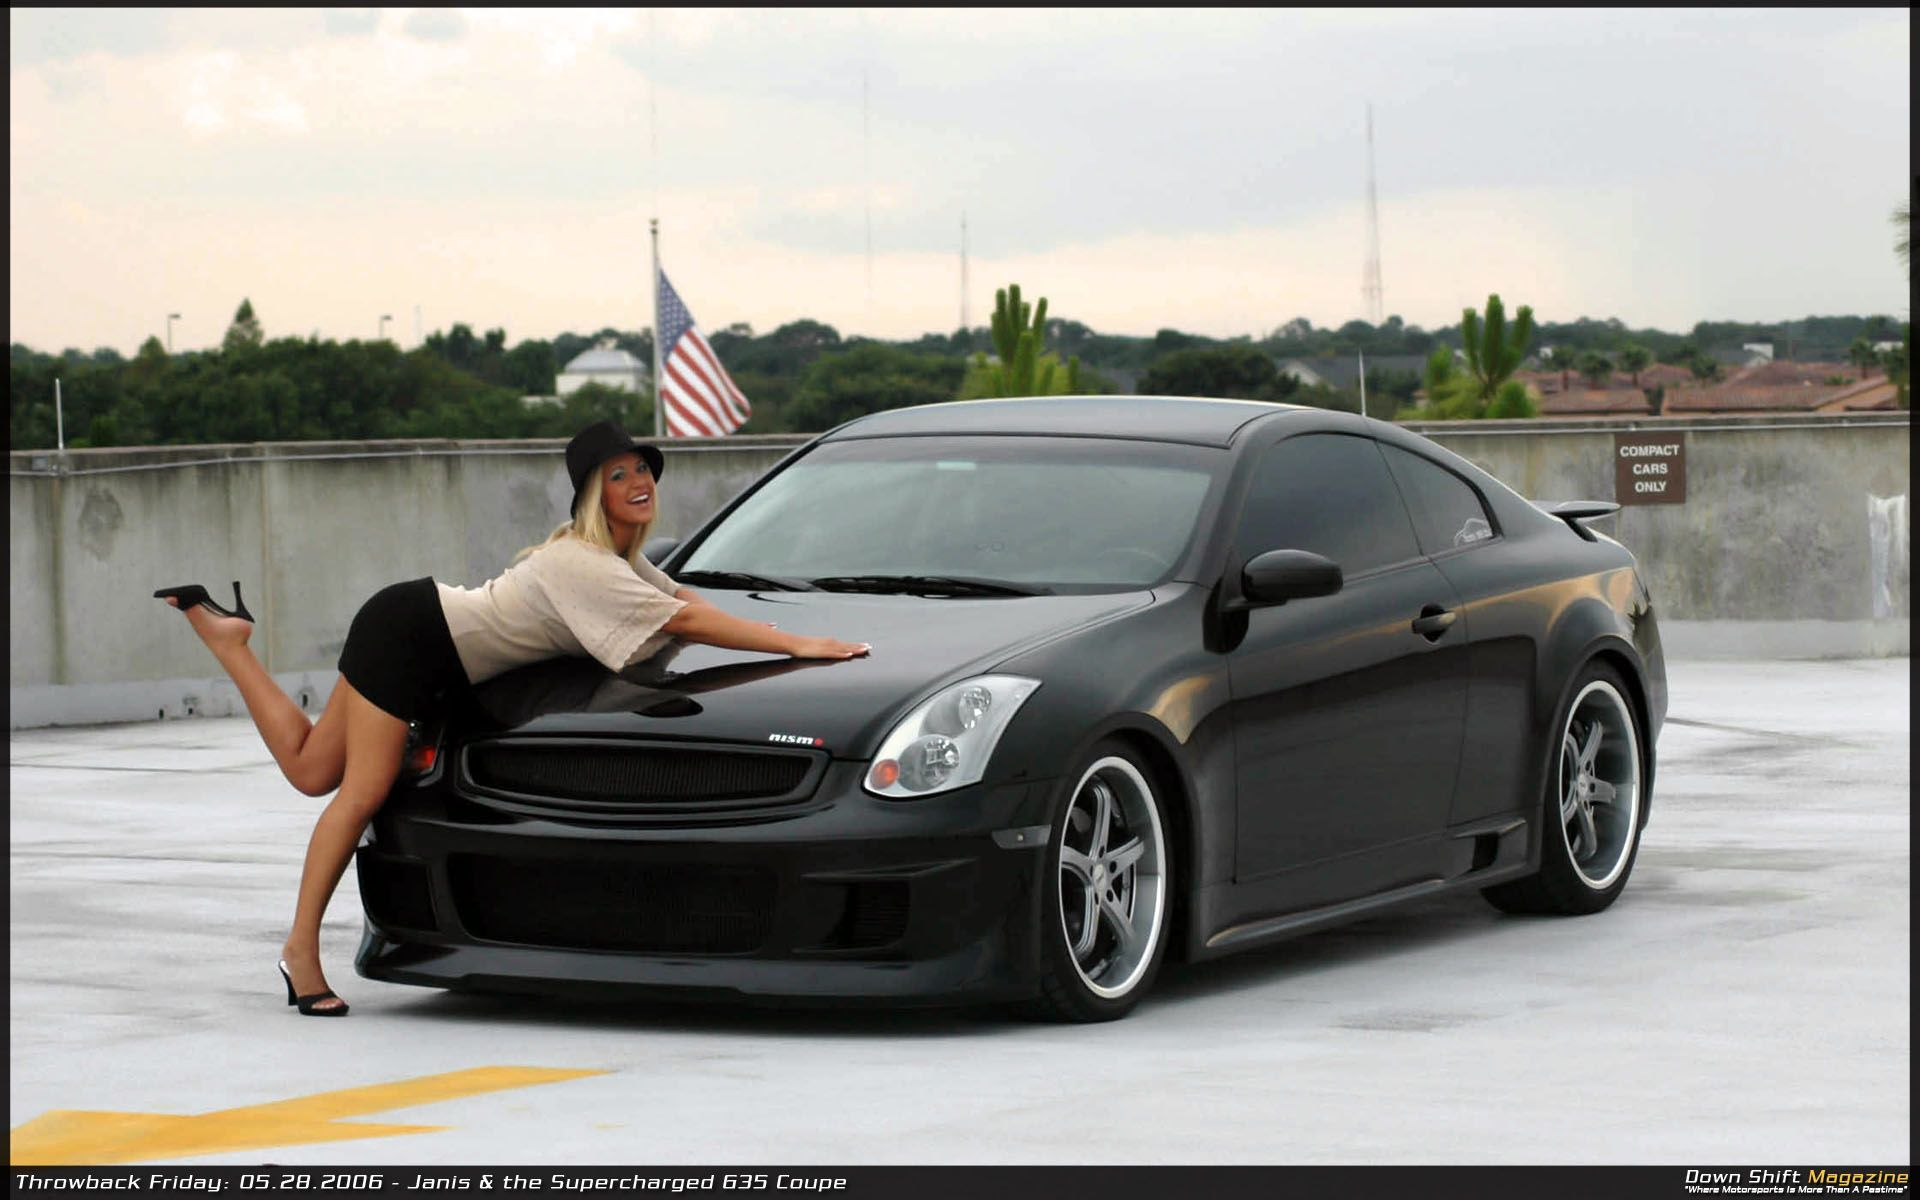 Throwback friday janis the supercharged g35 coupe rob goes throwback friday janis the supercharged g35 coupe vanachro Image collections